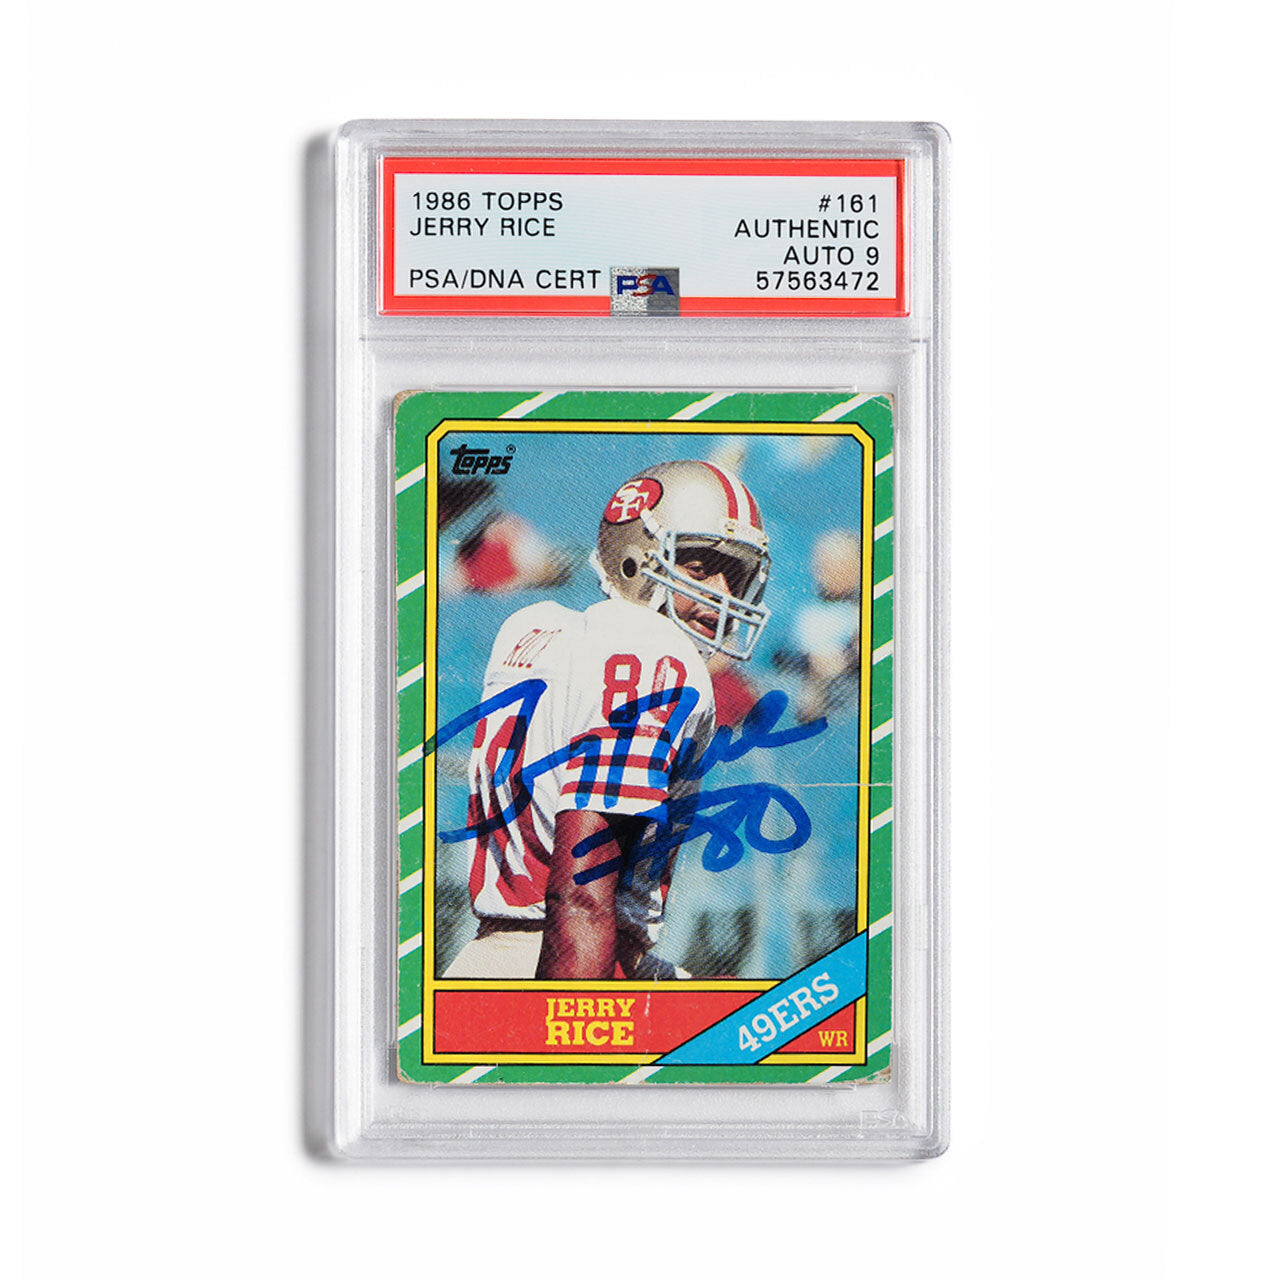 1986 Topps Jerry Rice Autographed Rookie Card